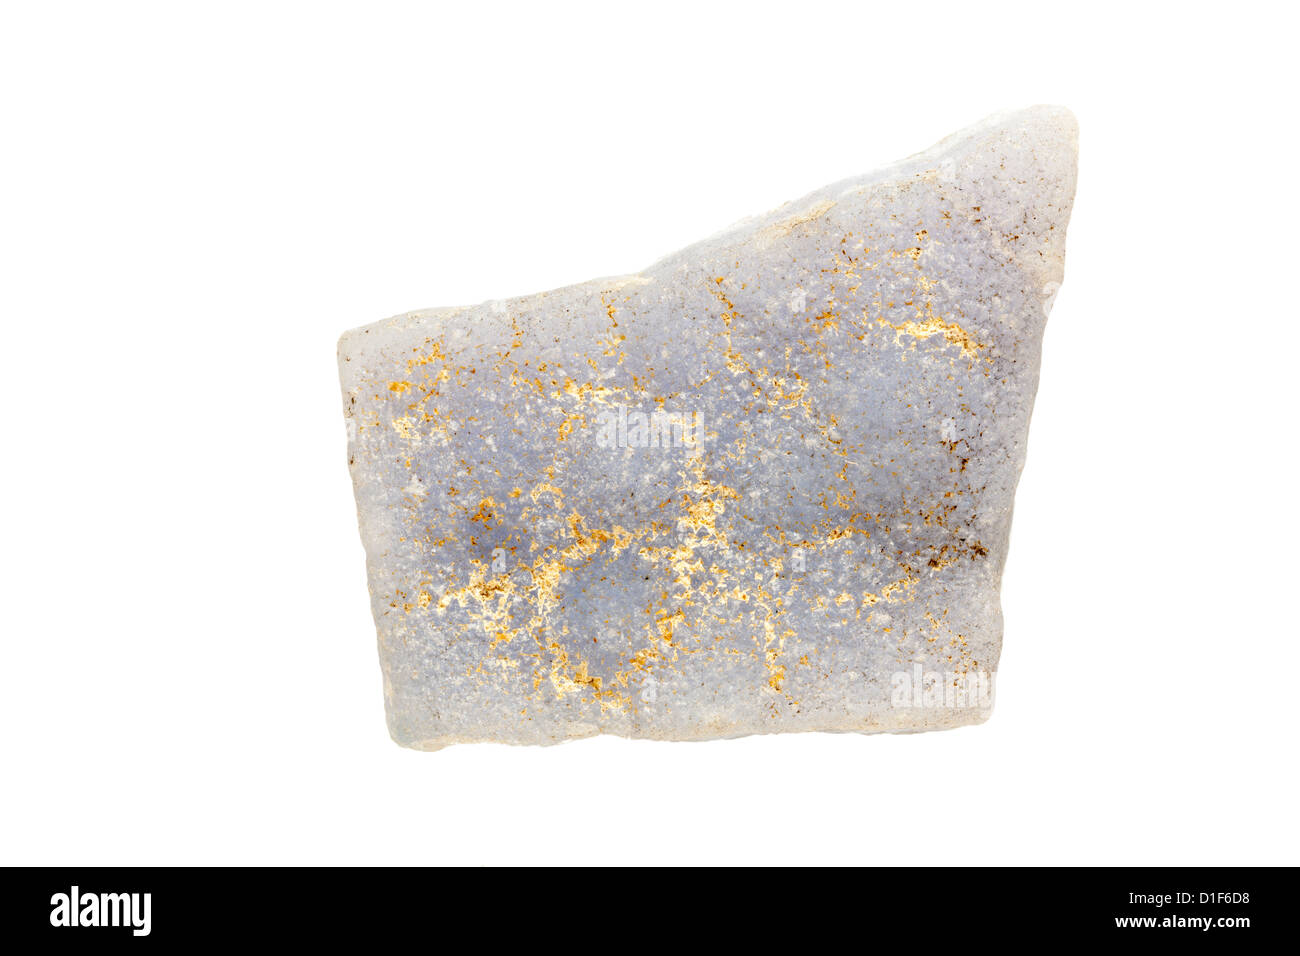 Anhydrite (Angelite) - Stock Image